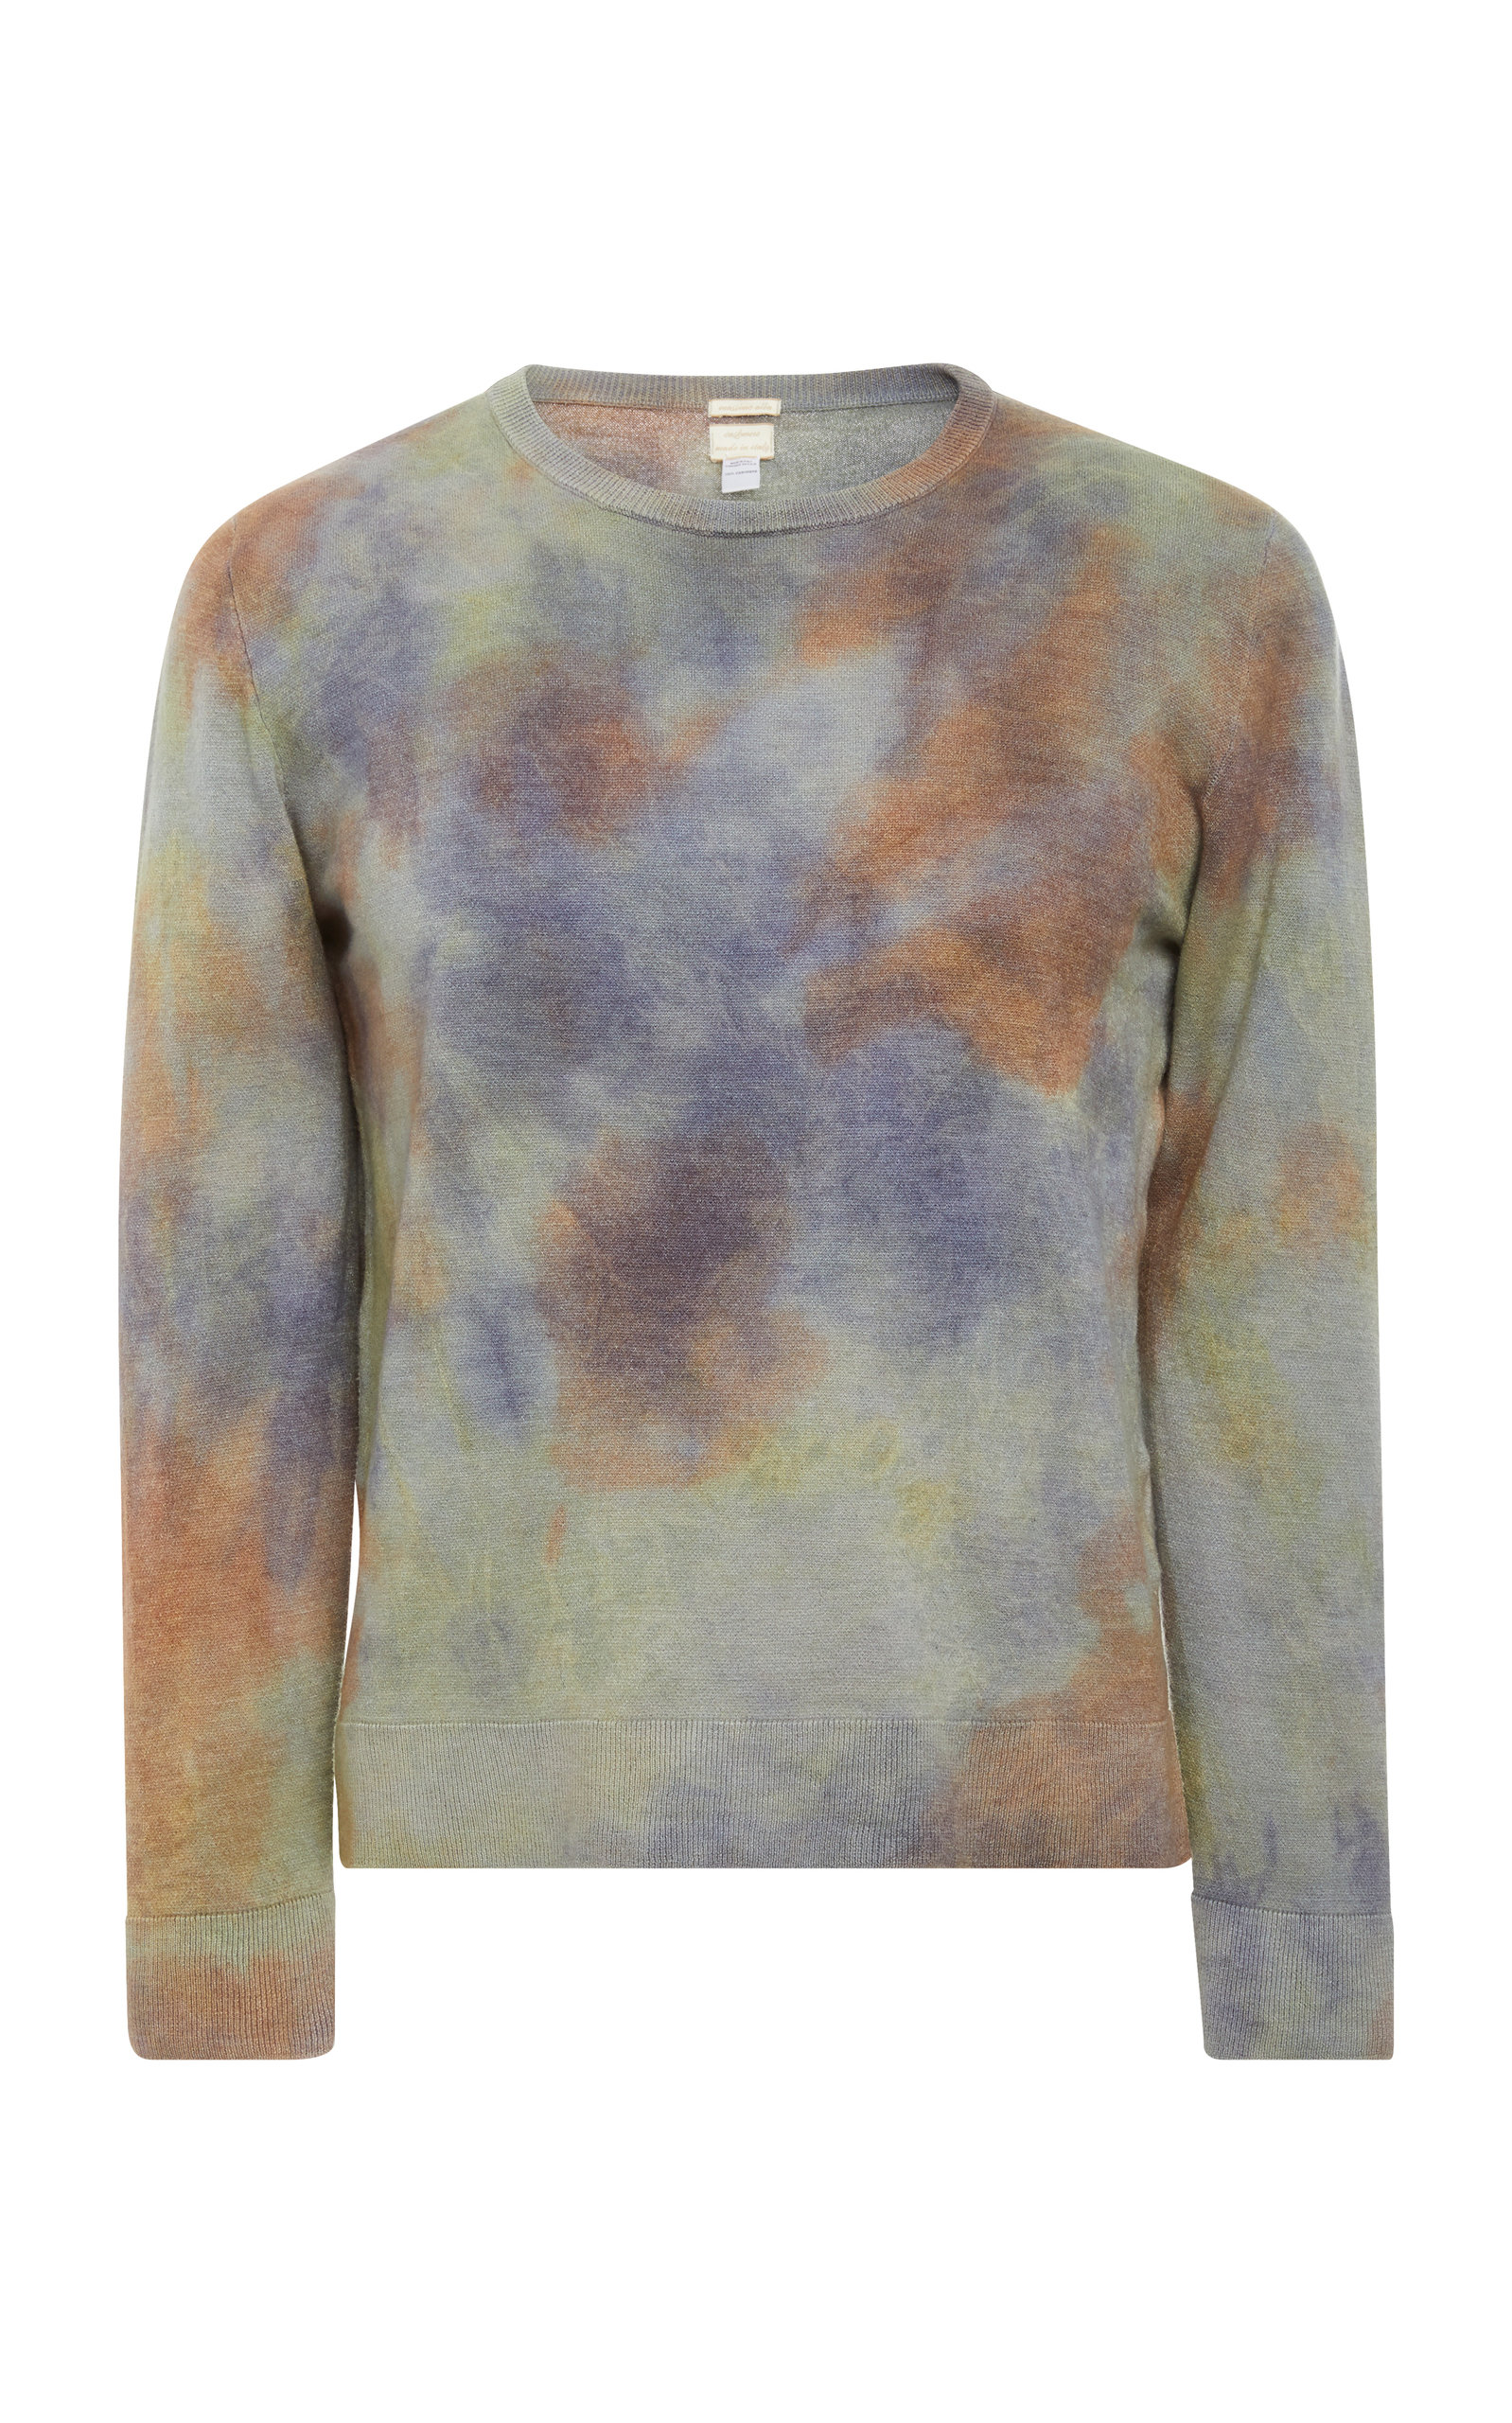 MASSIMO ALBA Tie-Dyed Cashmere Sweater - Light Green in Multi